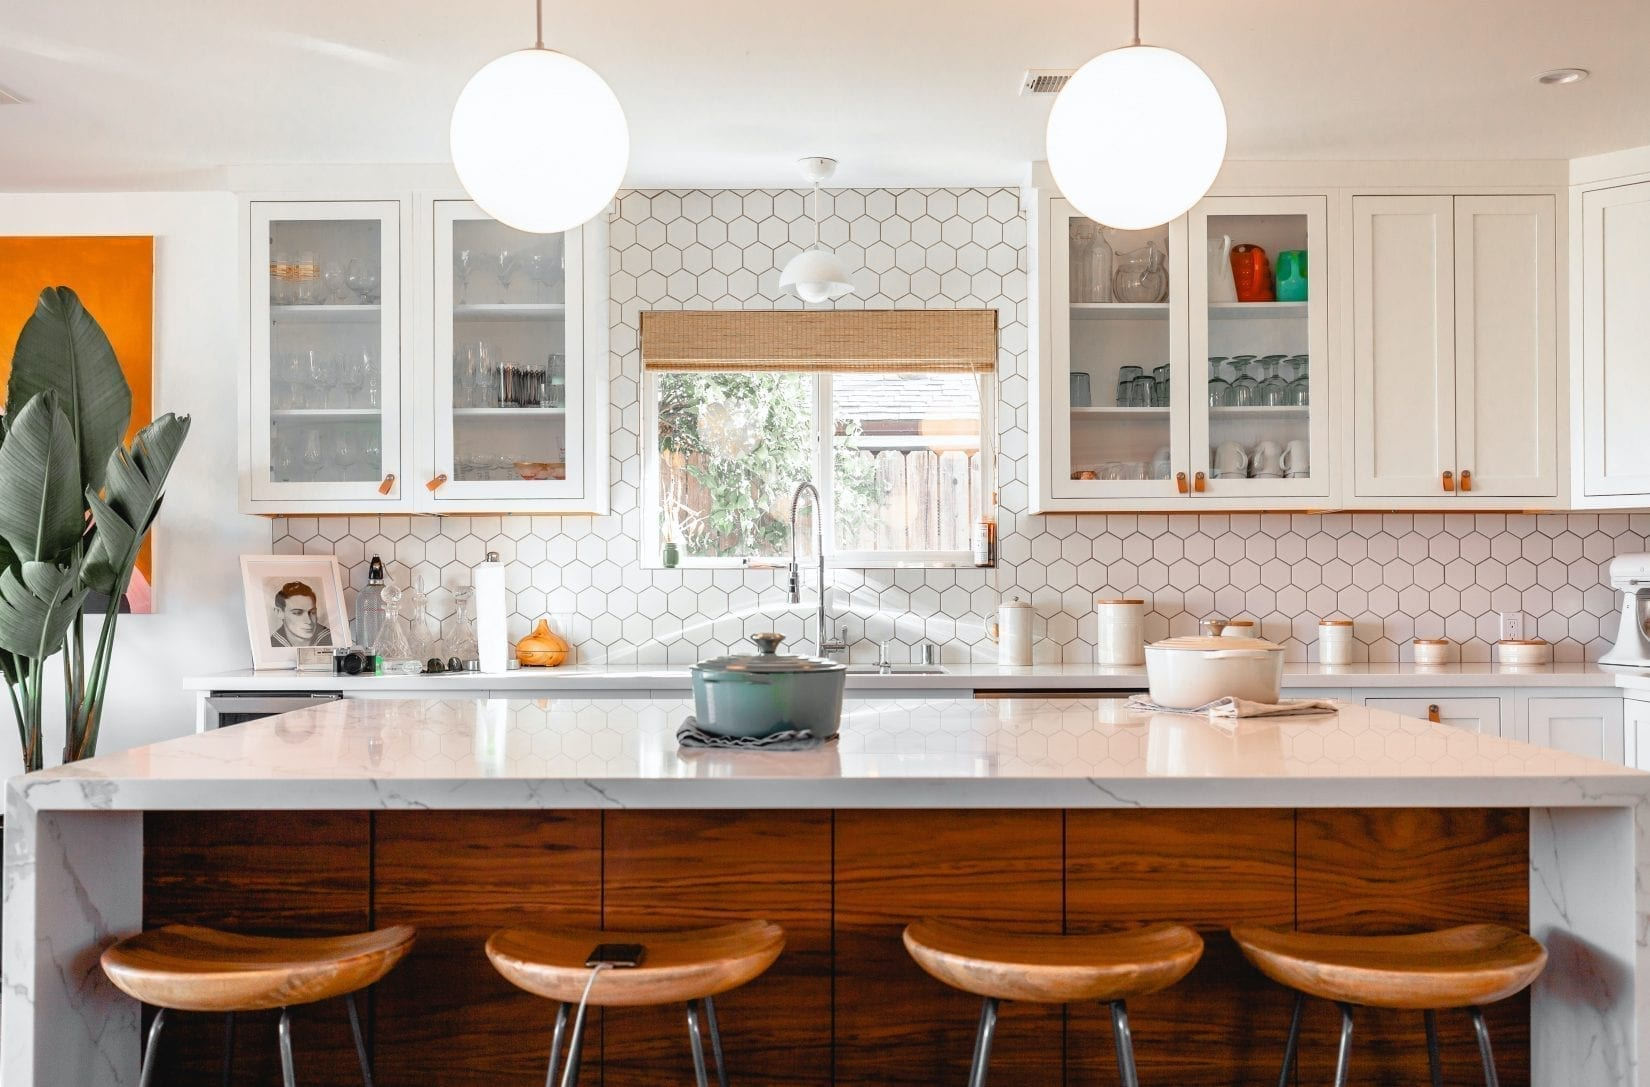 Kelowna Mortgage Brokers' Recommended Renovations